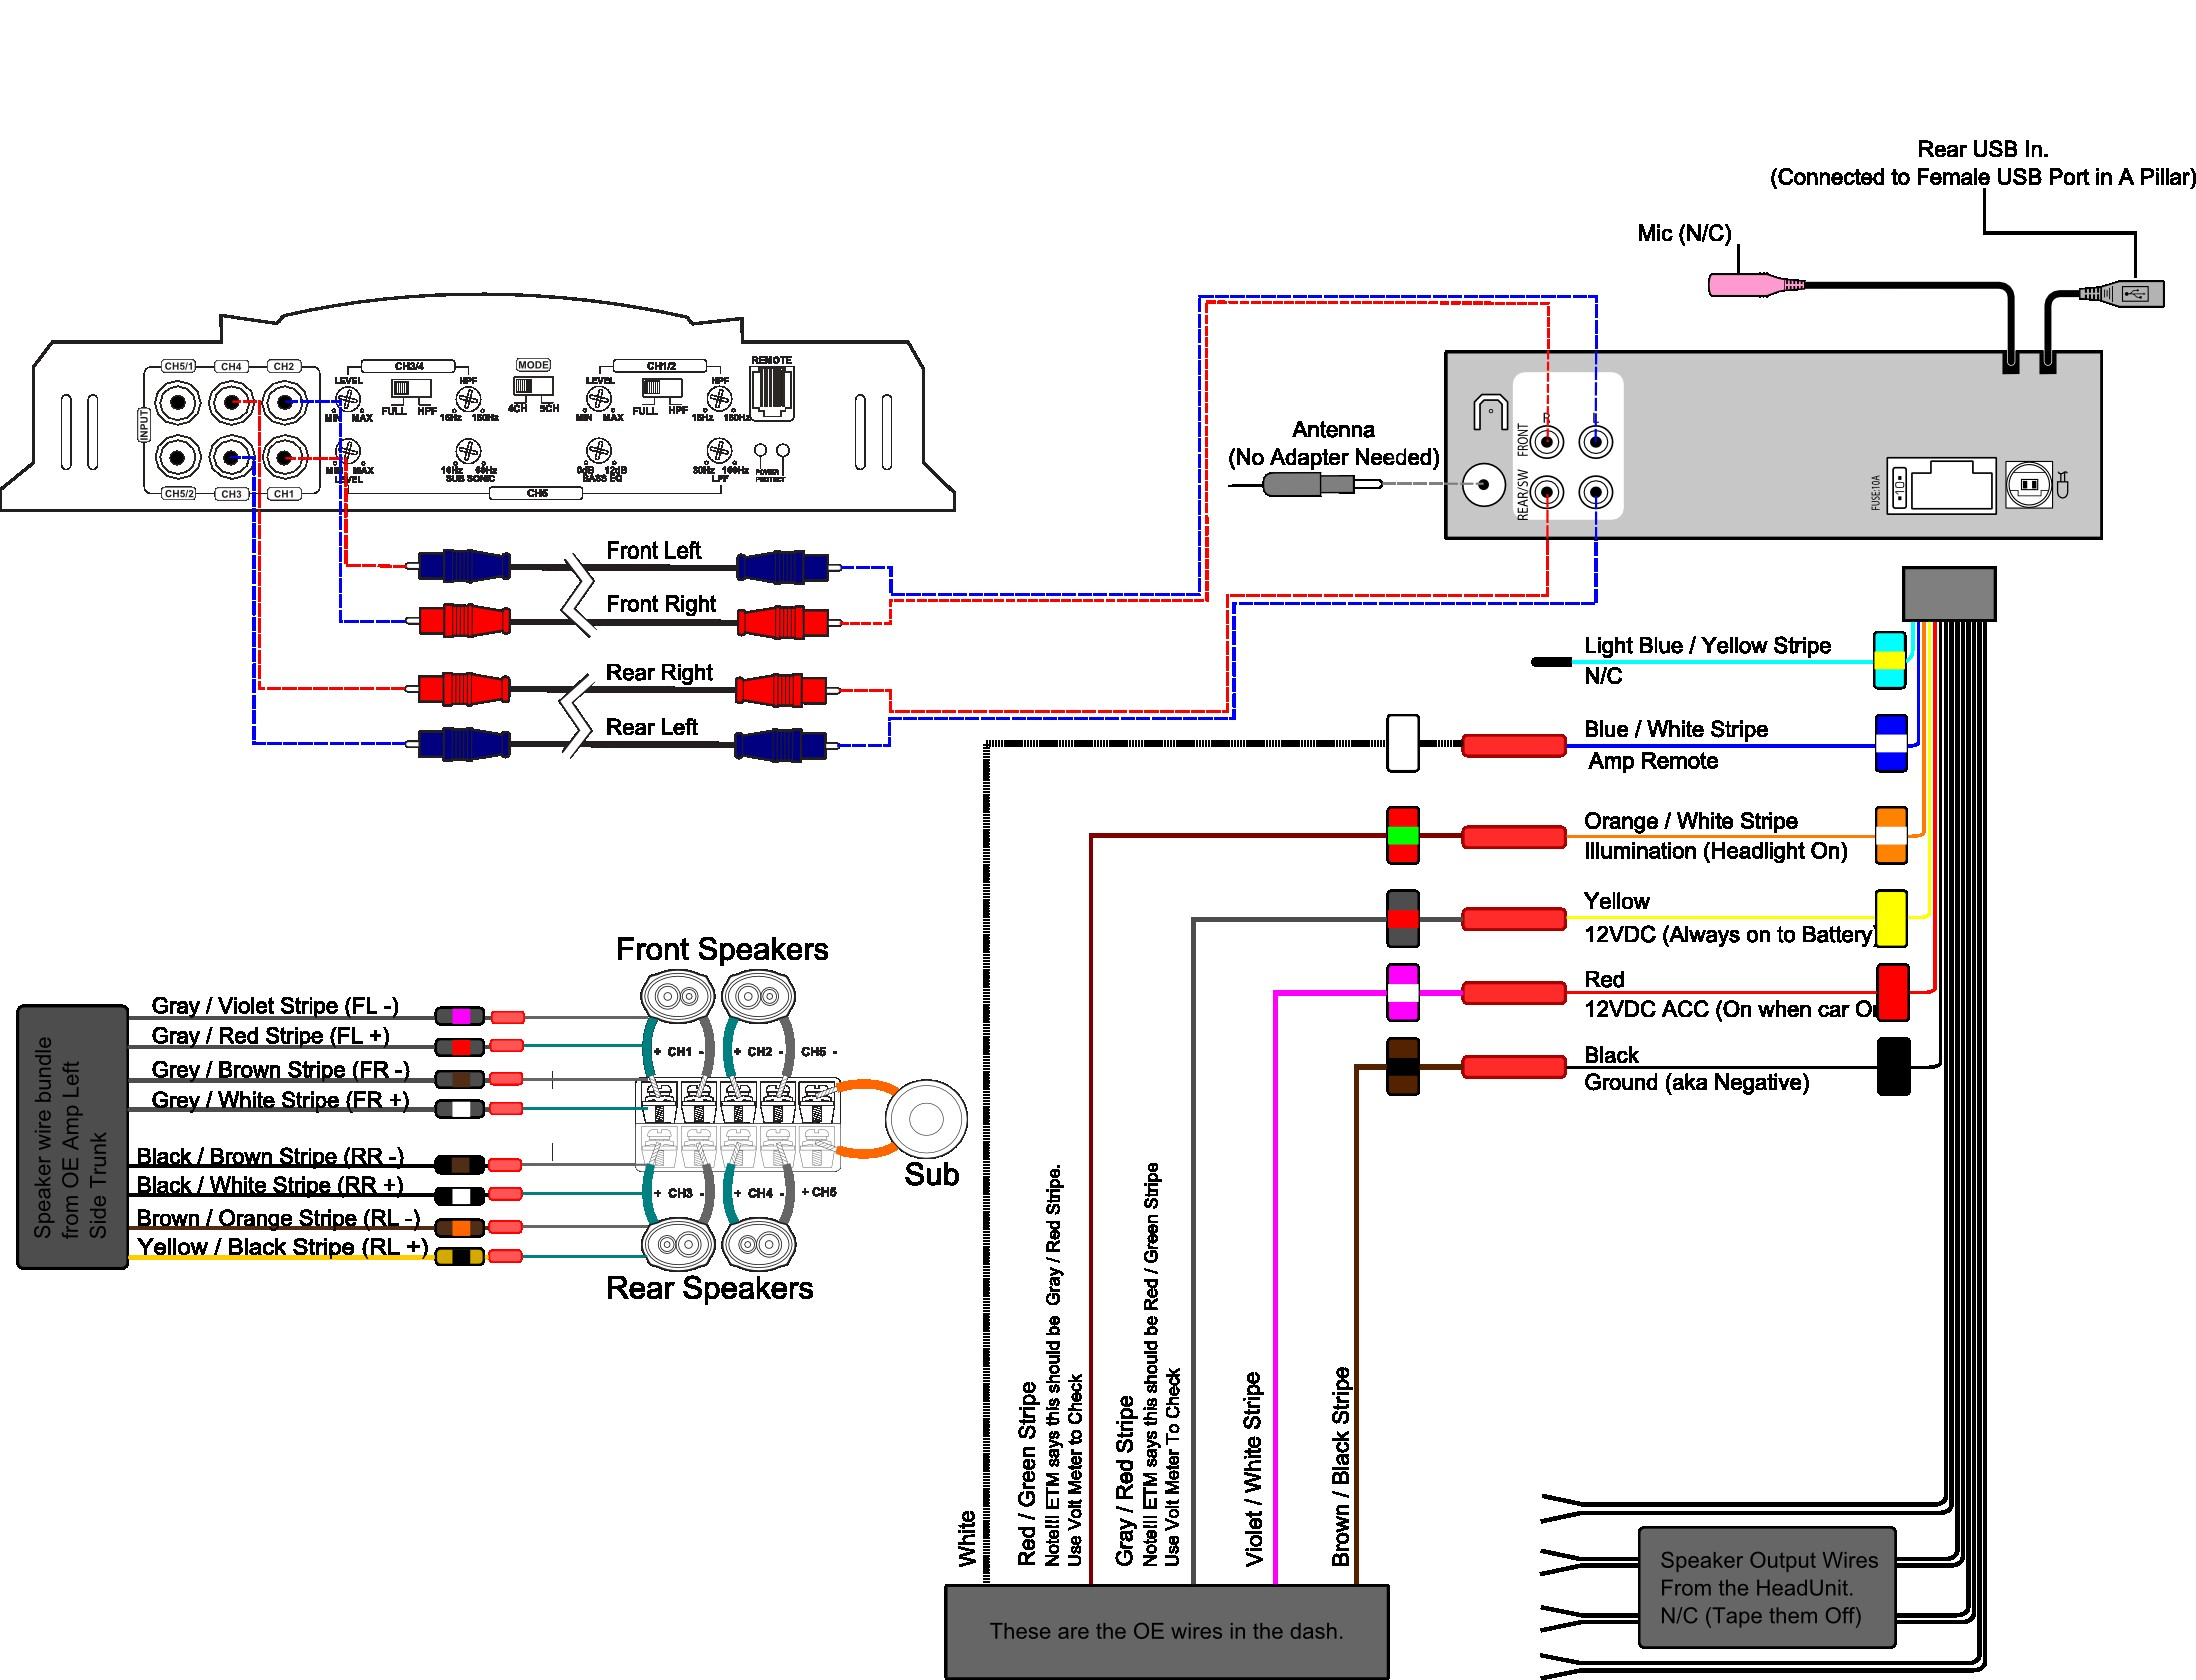 Bmw 335i Radio Wiring - Fusebox and Wiring Diagram layout-system -  layout-system.id-architects.itdiagram database - id-architects.it